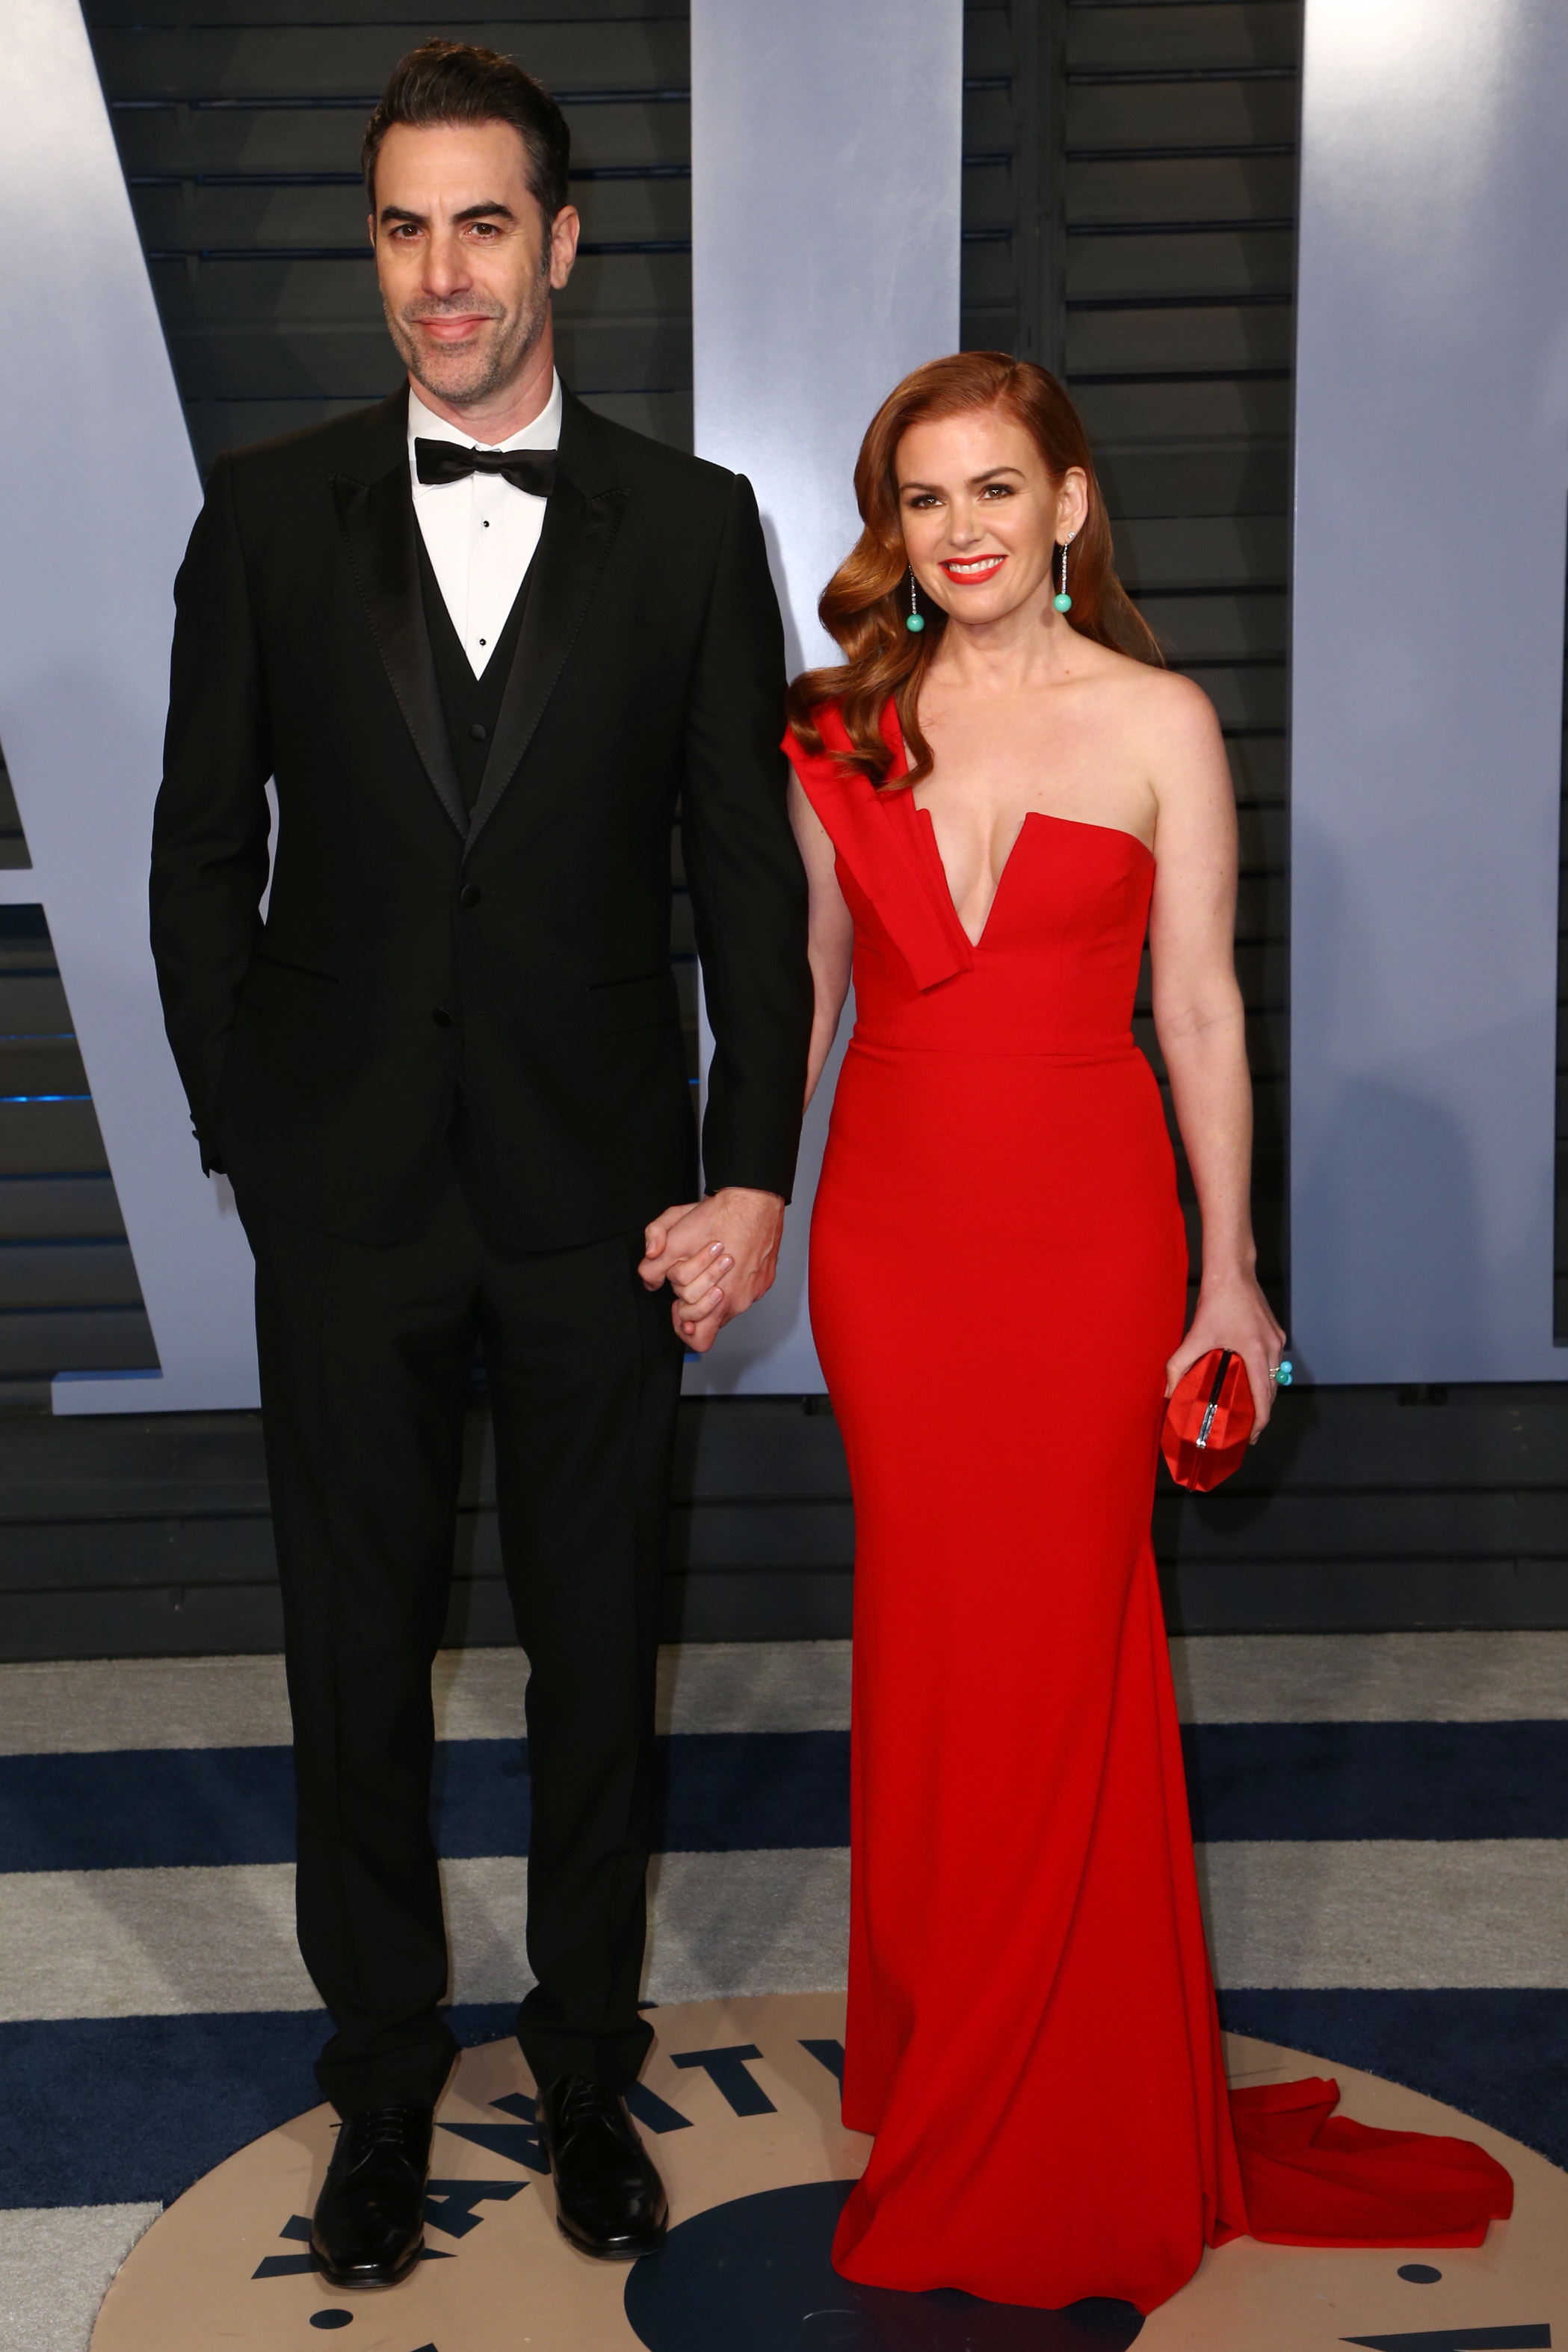 Sacha Baron Cohen and Isla Fisher attend the Vanity Fair Oscar Party in Beverly Hills on March 4, 2018.